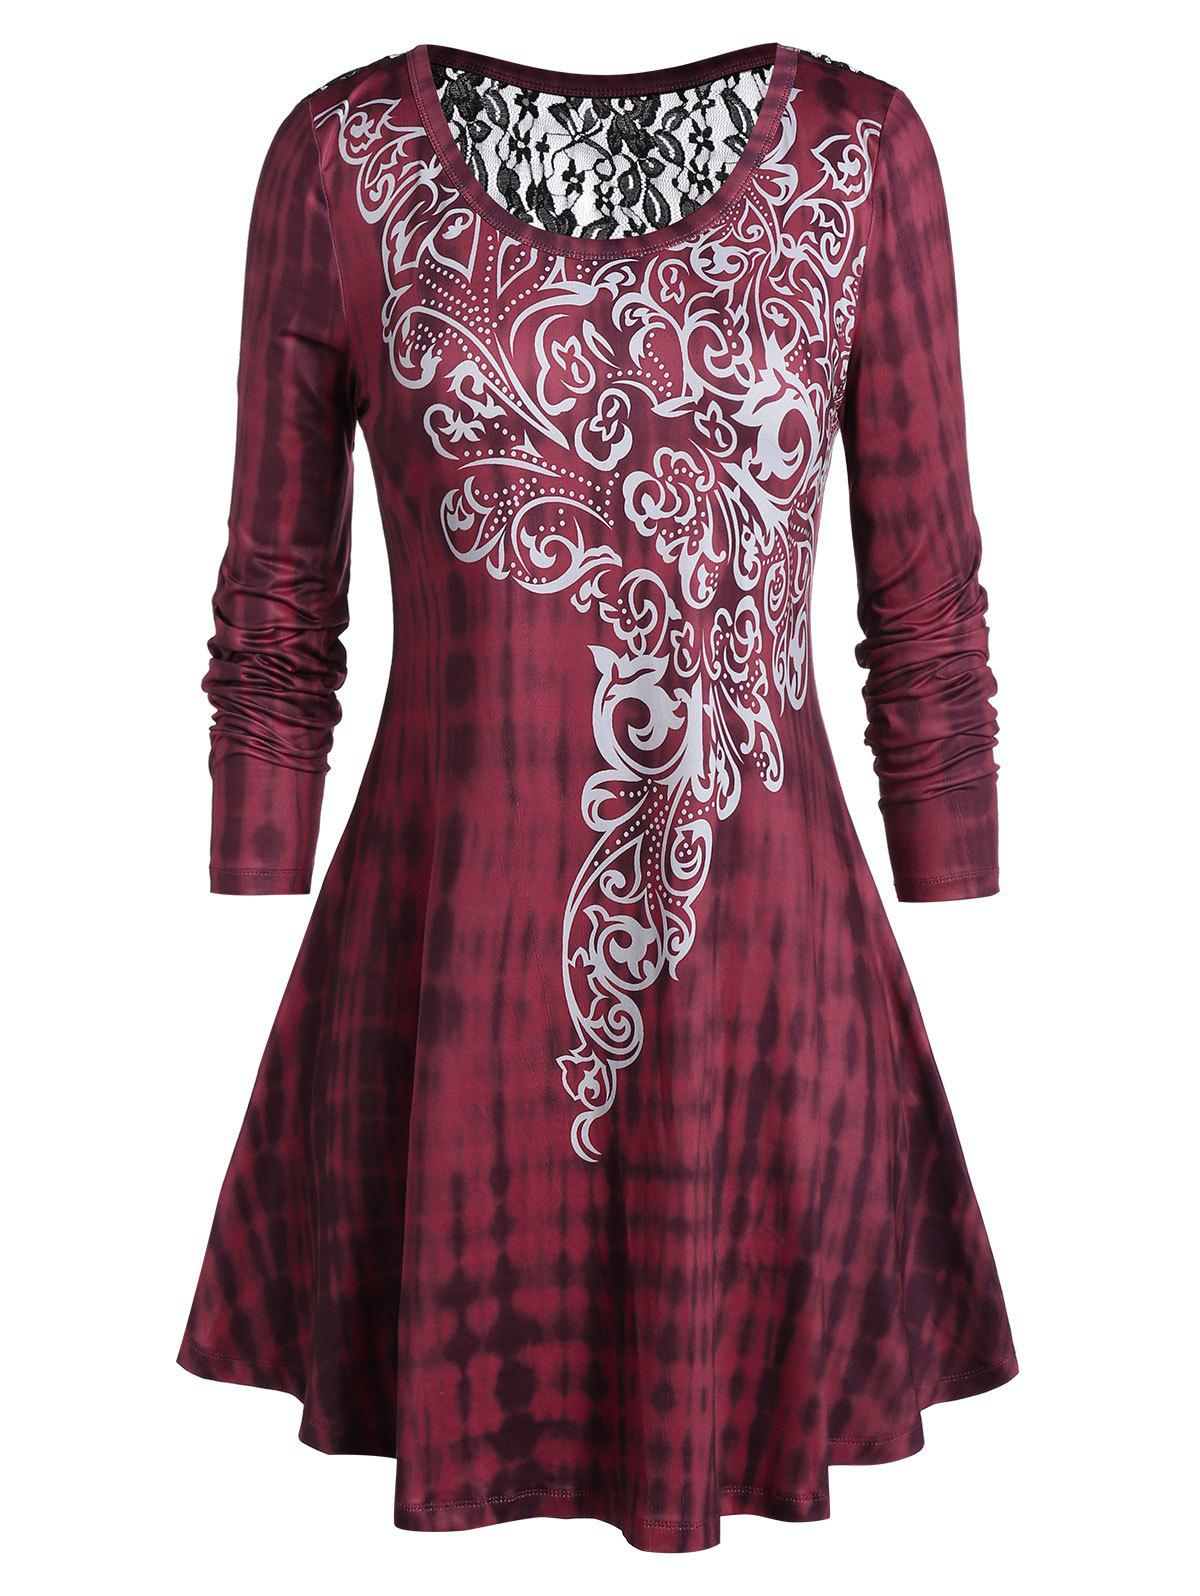 Plus Size Tie Dye Ethnic Print Tunic T-shirt, Red wine